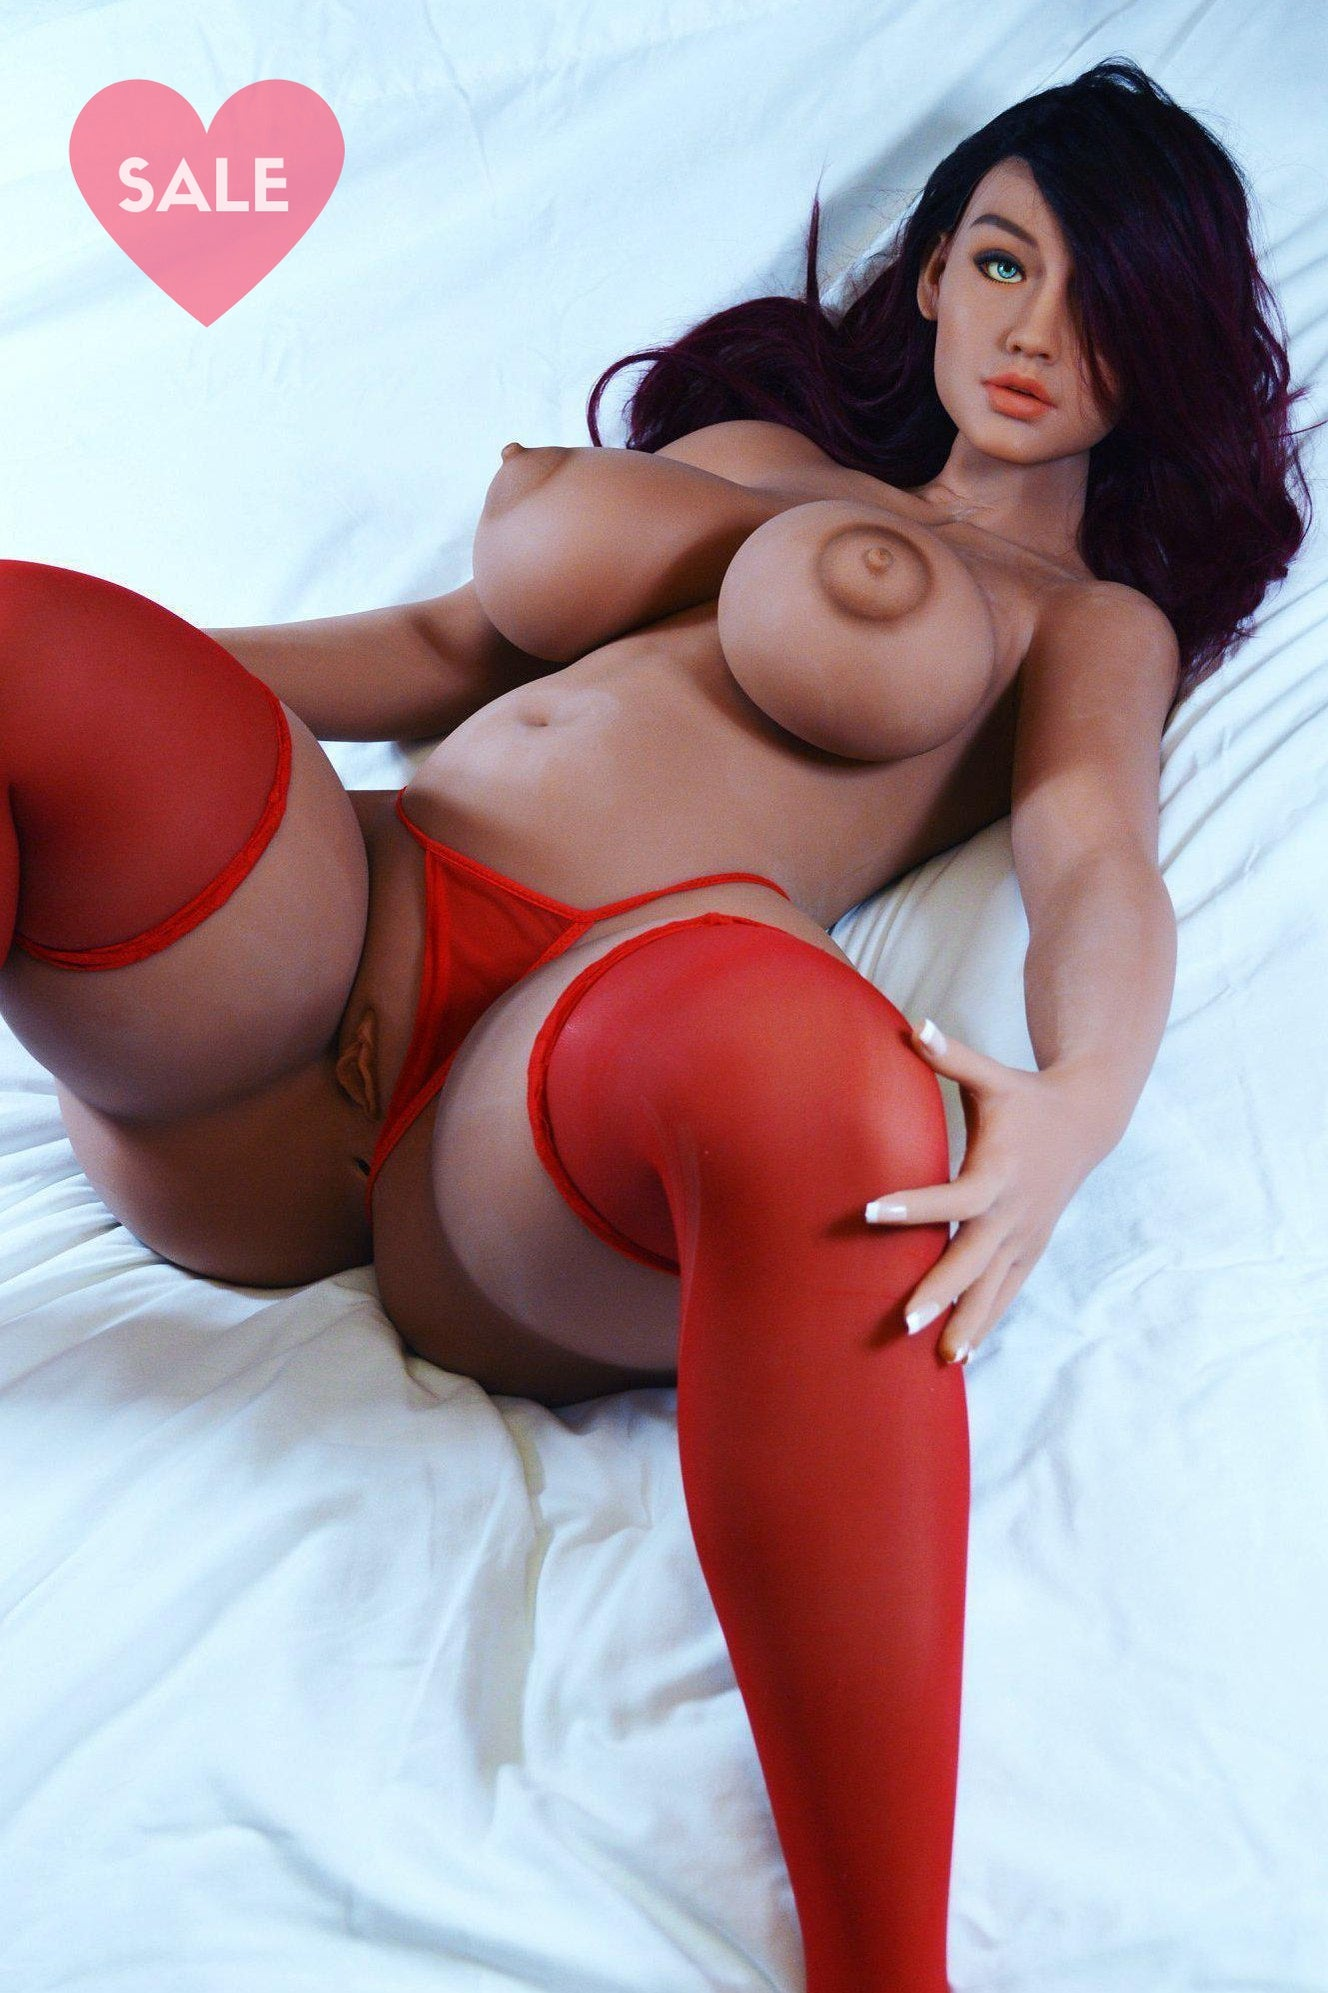 YL Dolls 158cm Thick & Juicy | Love Sex Doll - Kat